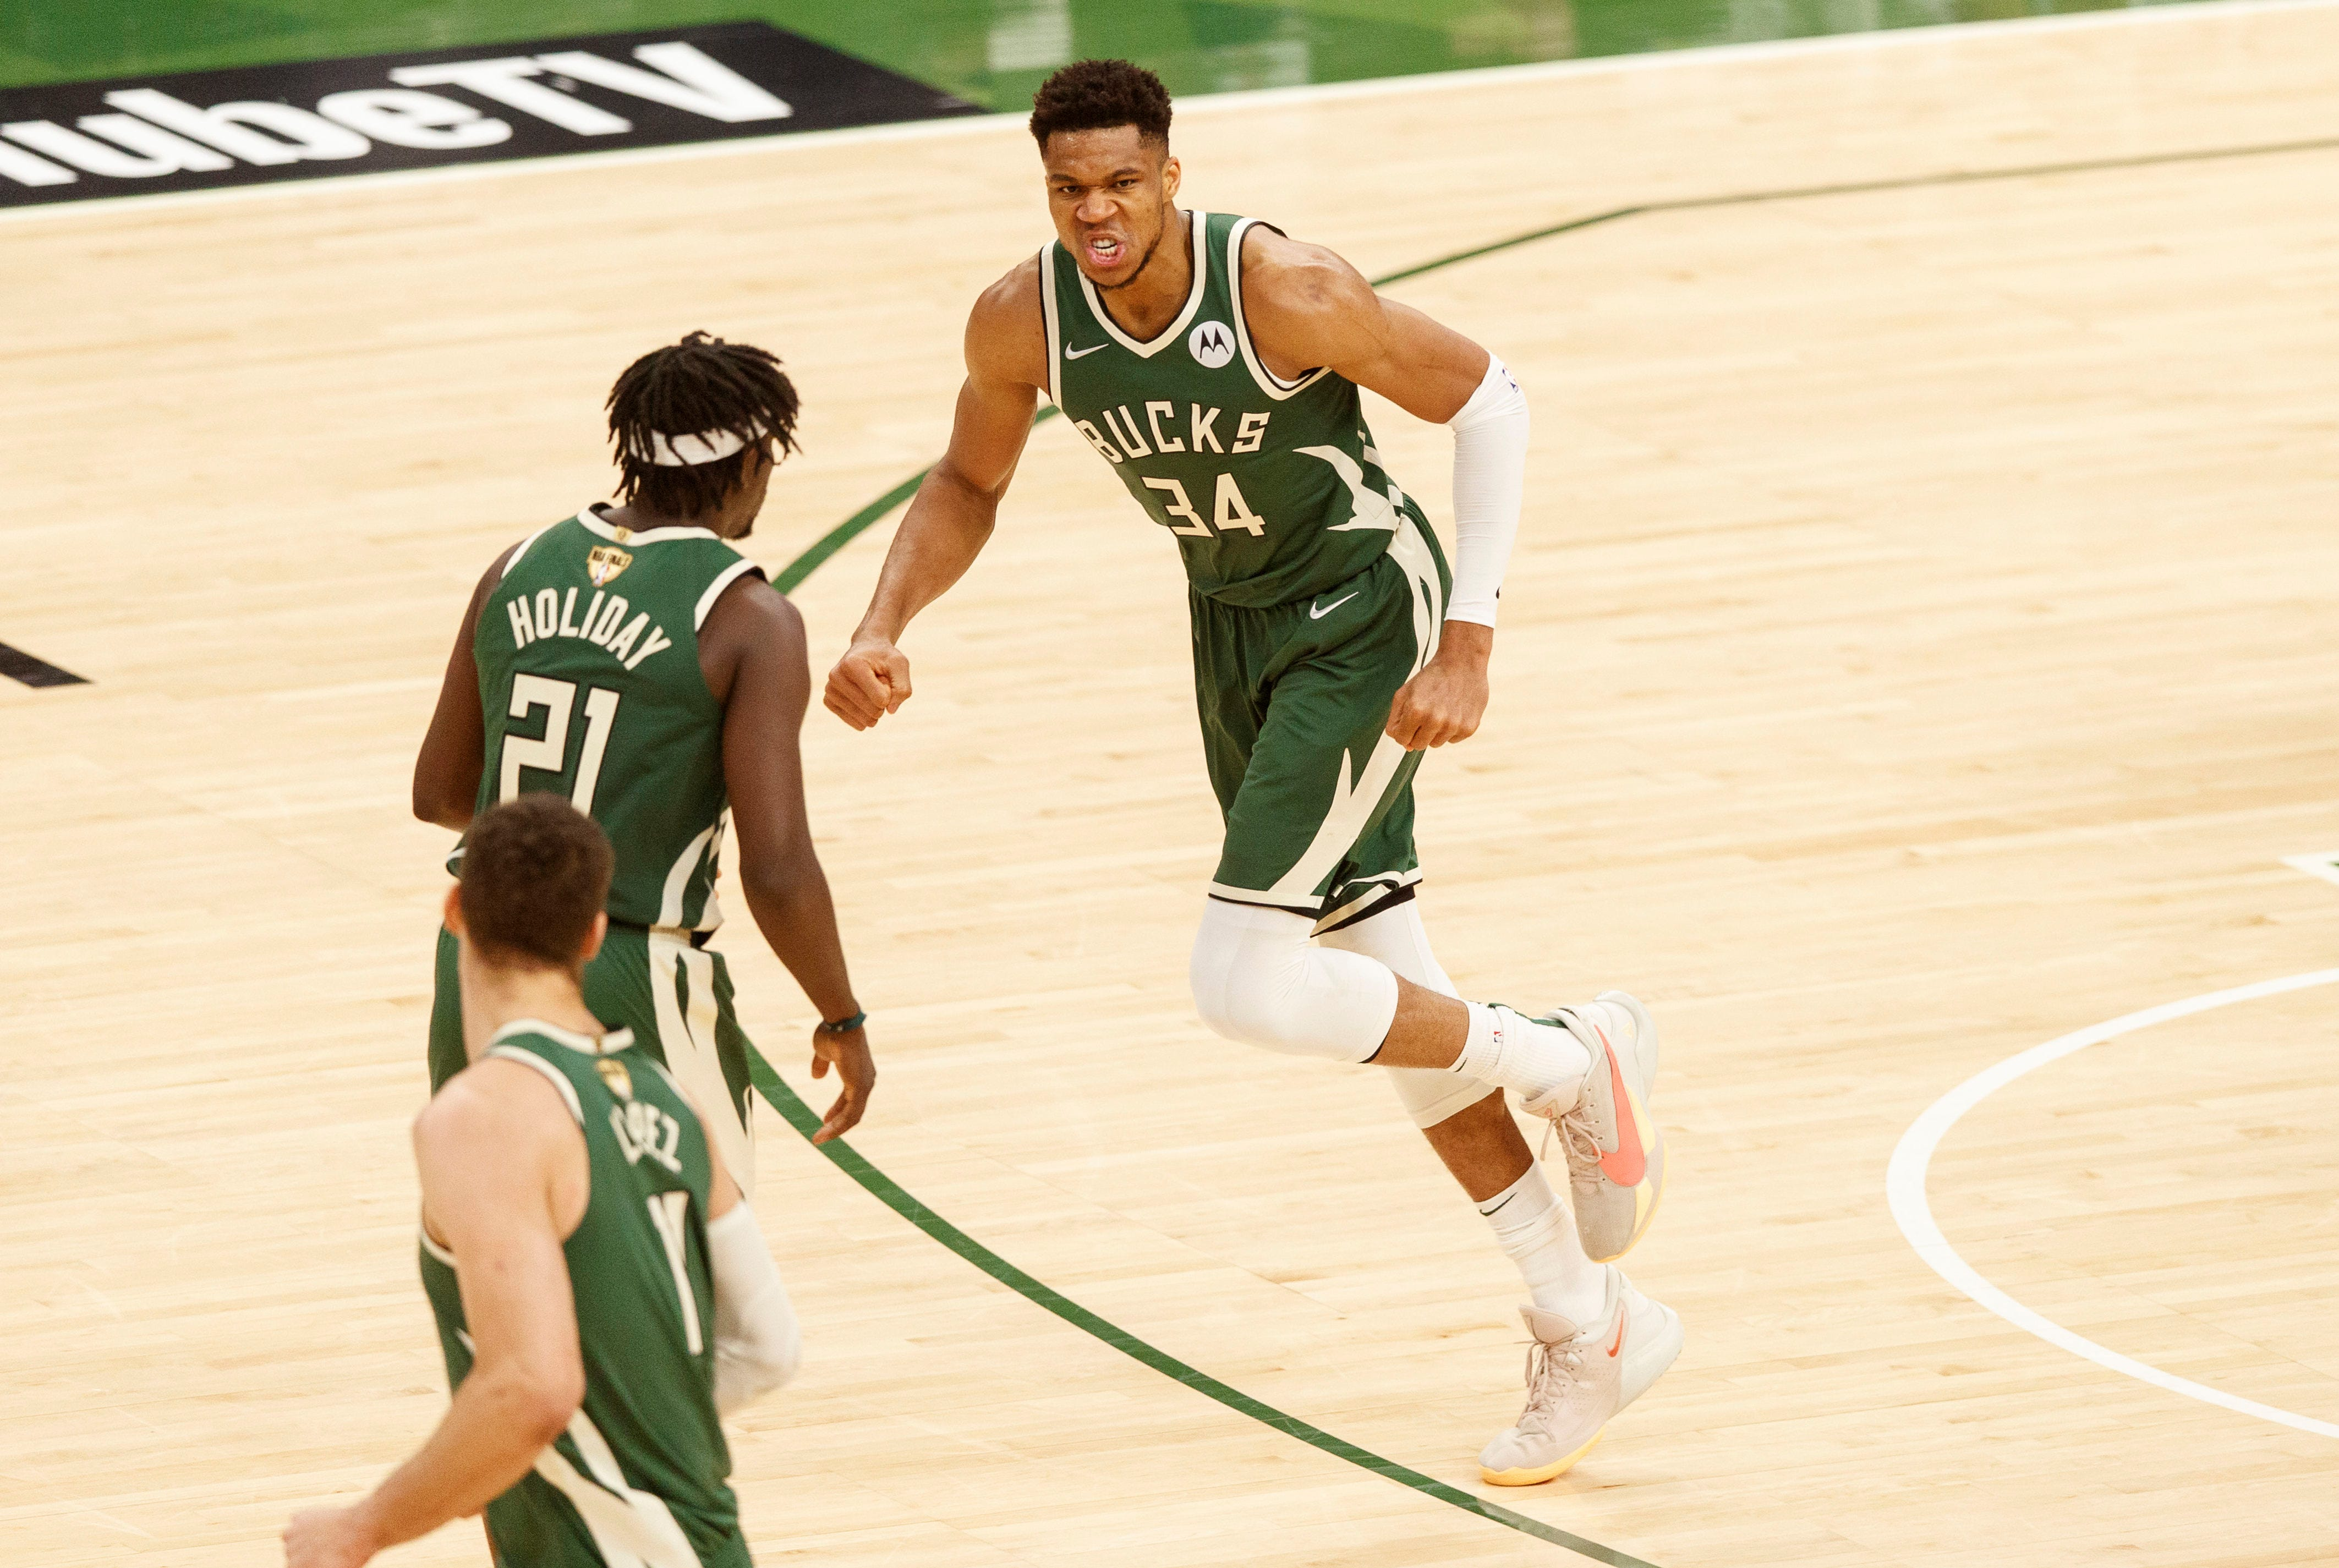 NBA Finals: Bucks rout Suns in Game 3 behind Giannis Antetokounmpo s huge 41-point effort